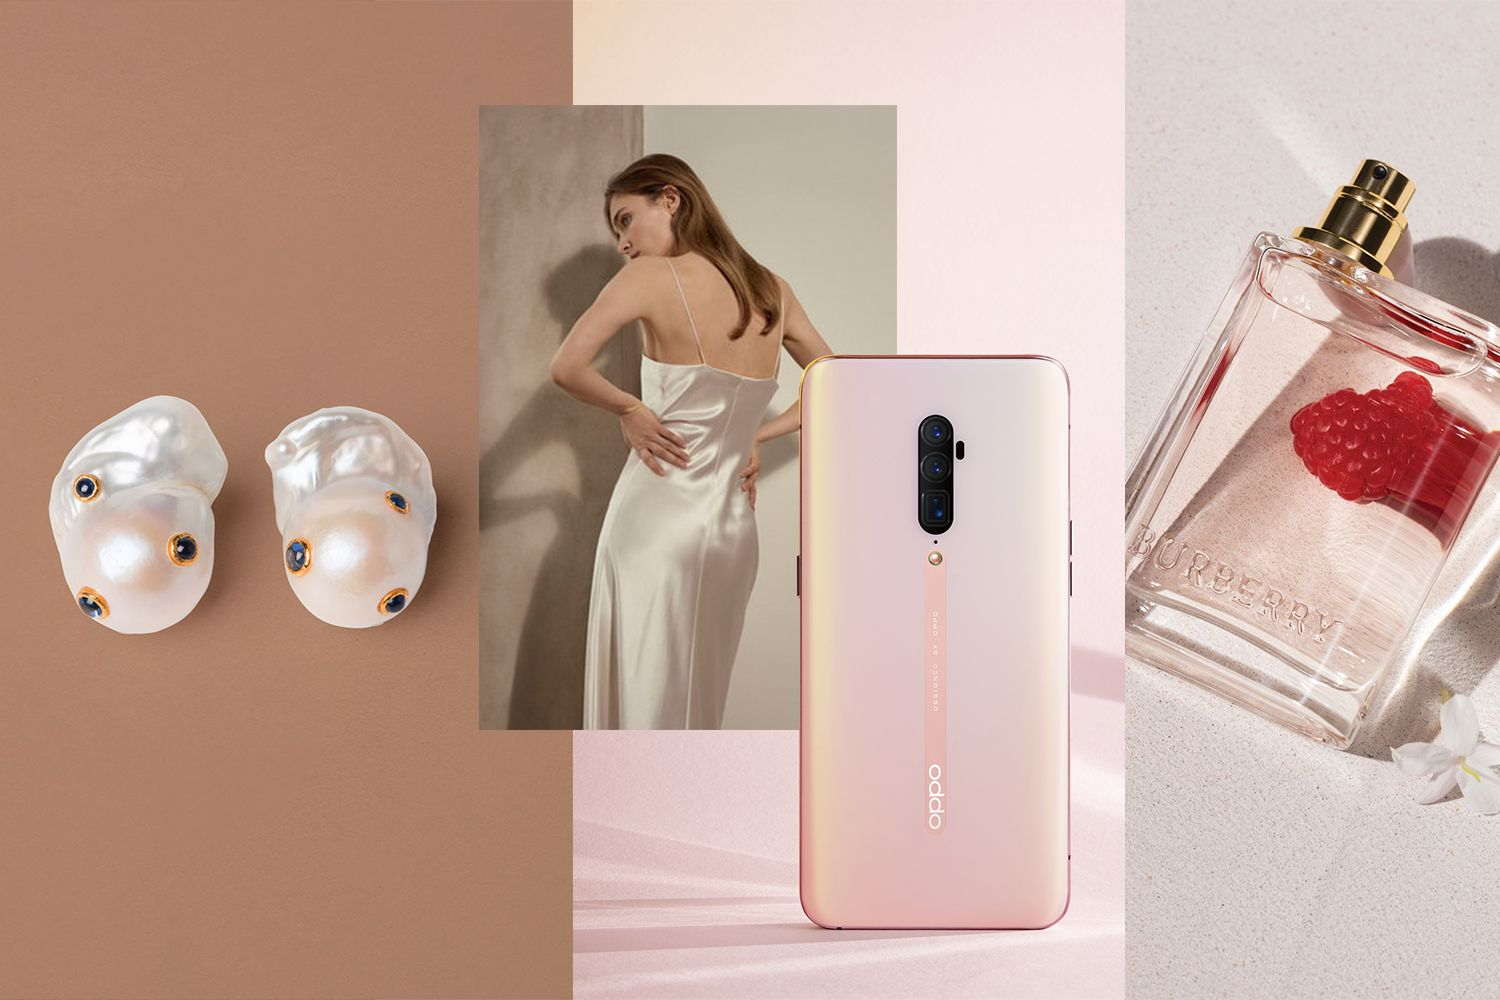 Editor's Picks: The Ultimate Concert Phone, Jahn Earrings, Slip Dresses And More